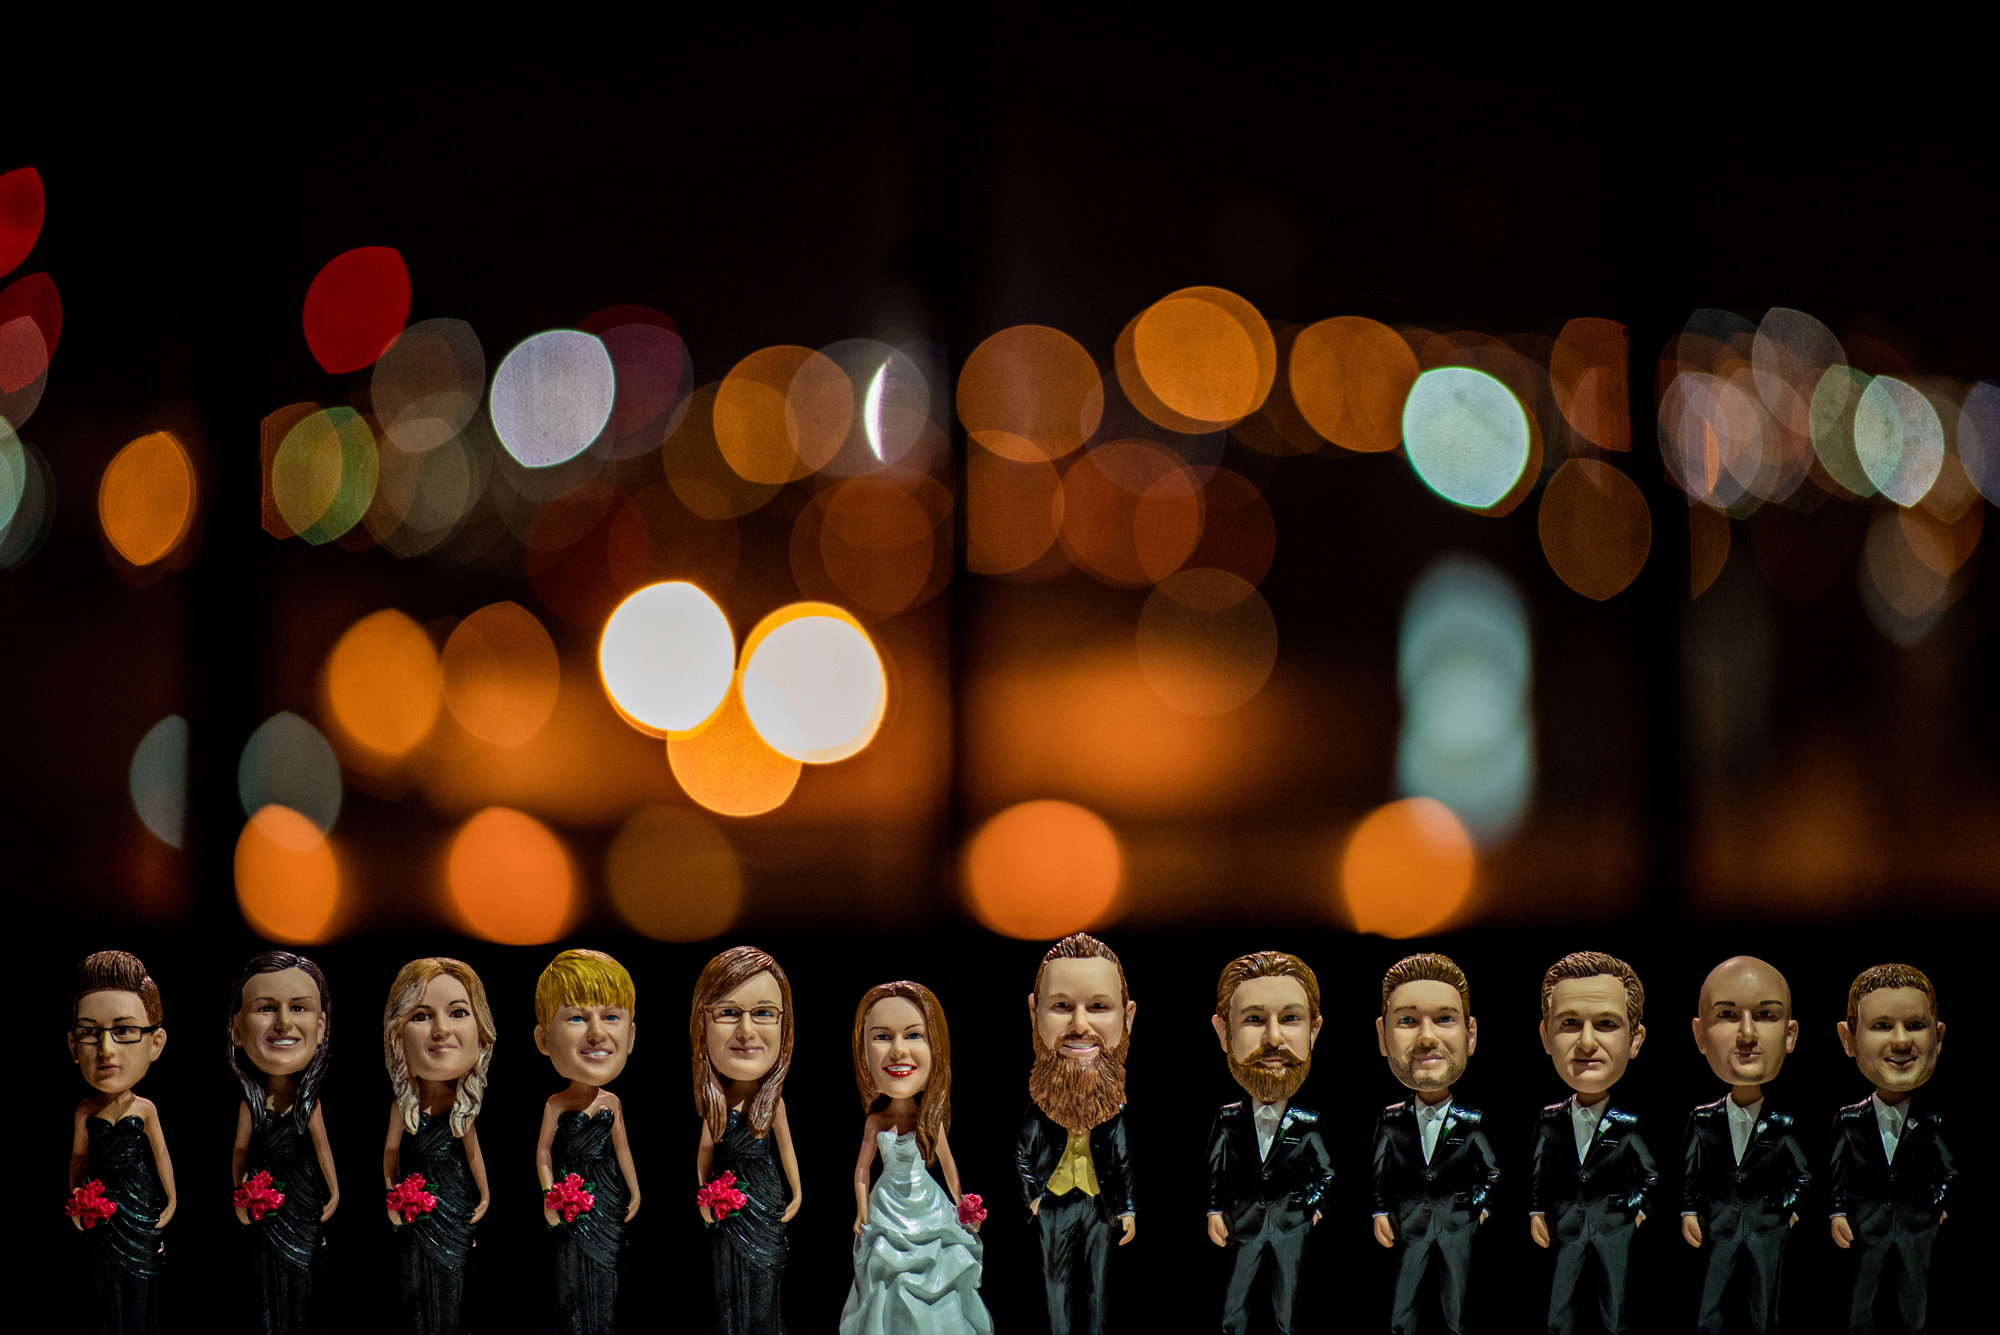 Bobble heads of bride, groom and bridal party - photo by Cooked Photography